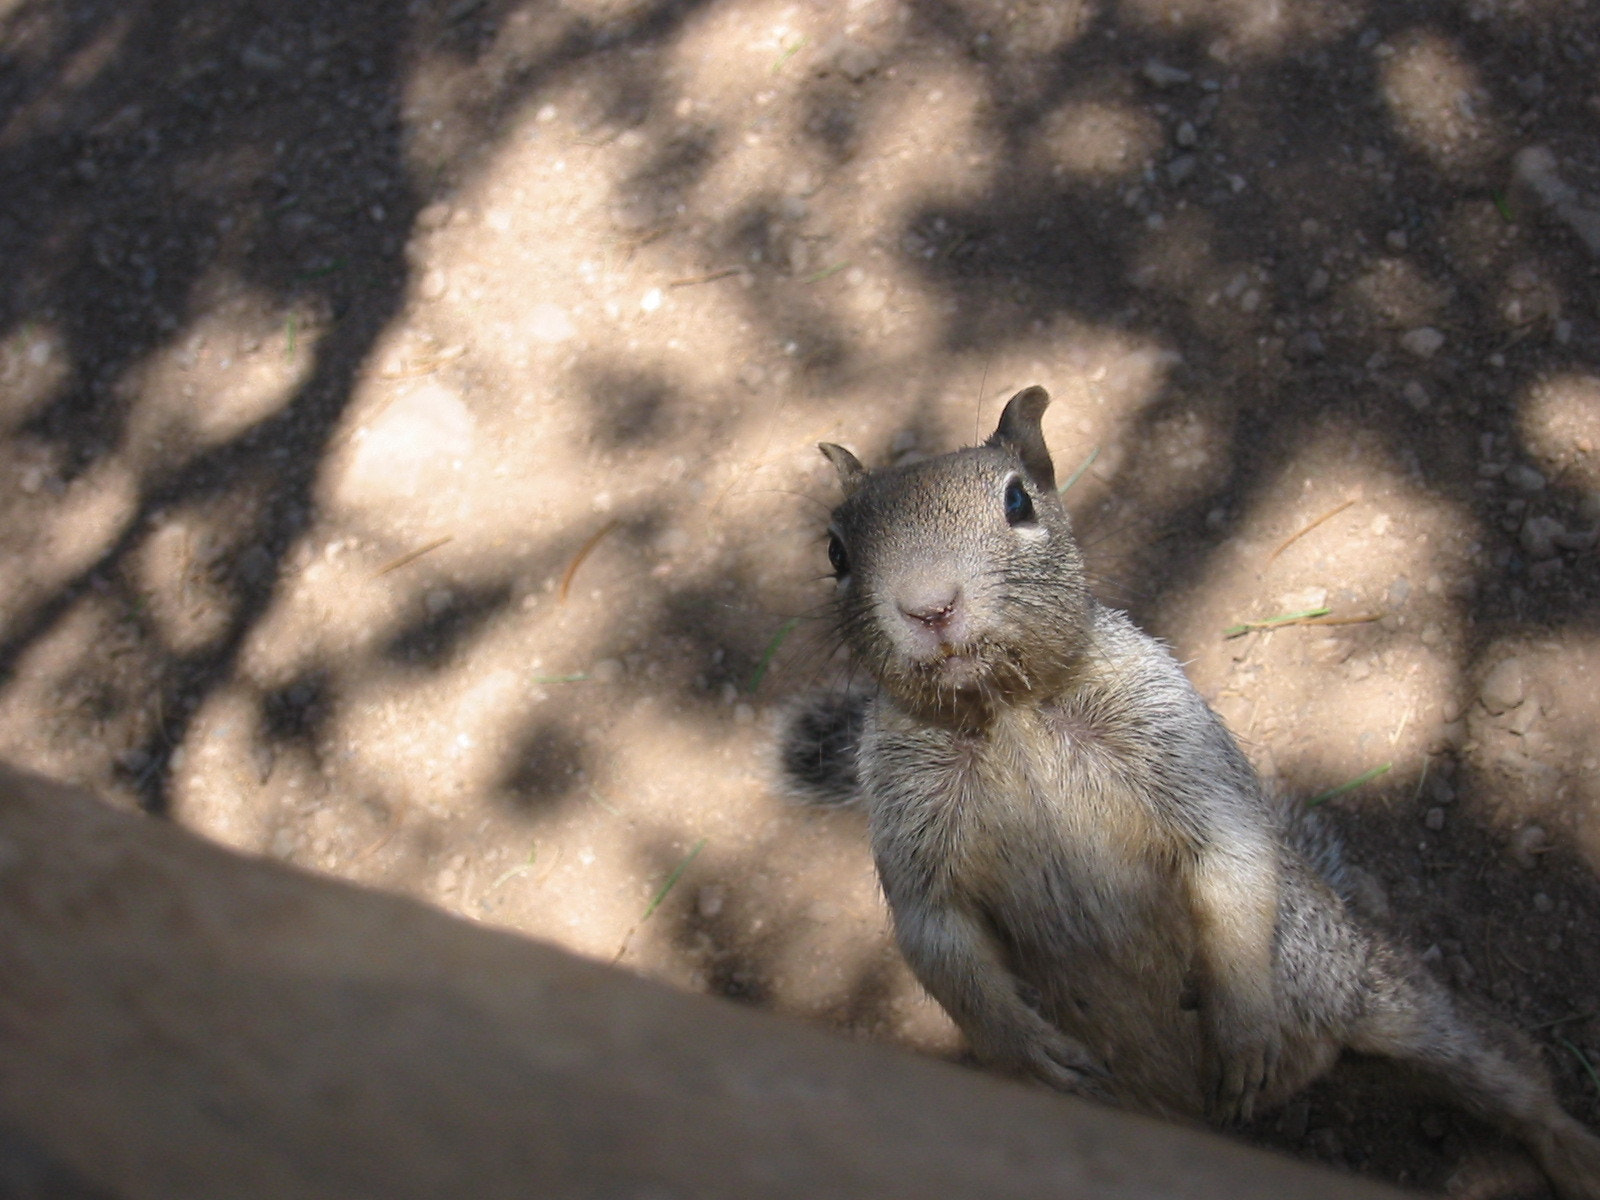 Photograph A squirrel at the Grand Canyon by Fabrice Jazbinsek on 500px